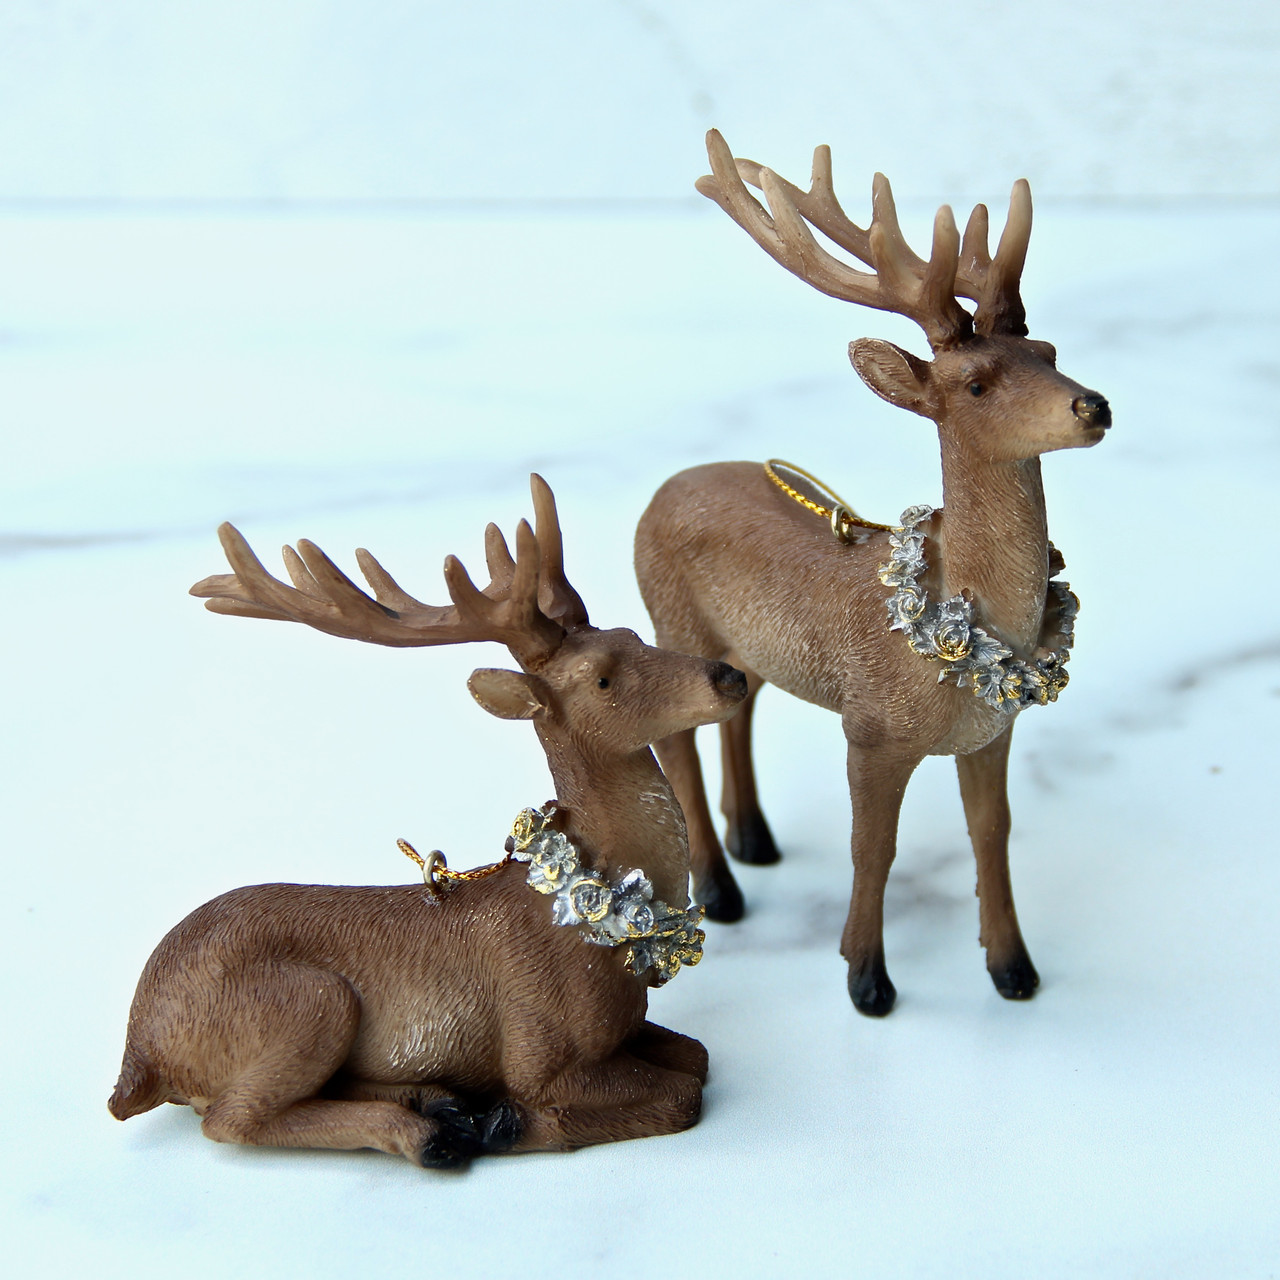 Set of Three Rustic Resin Deer Ornaments with Wreath